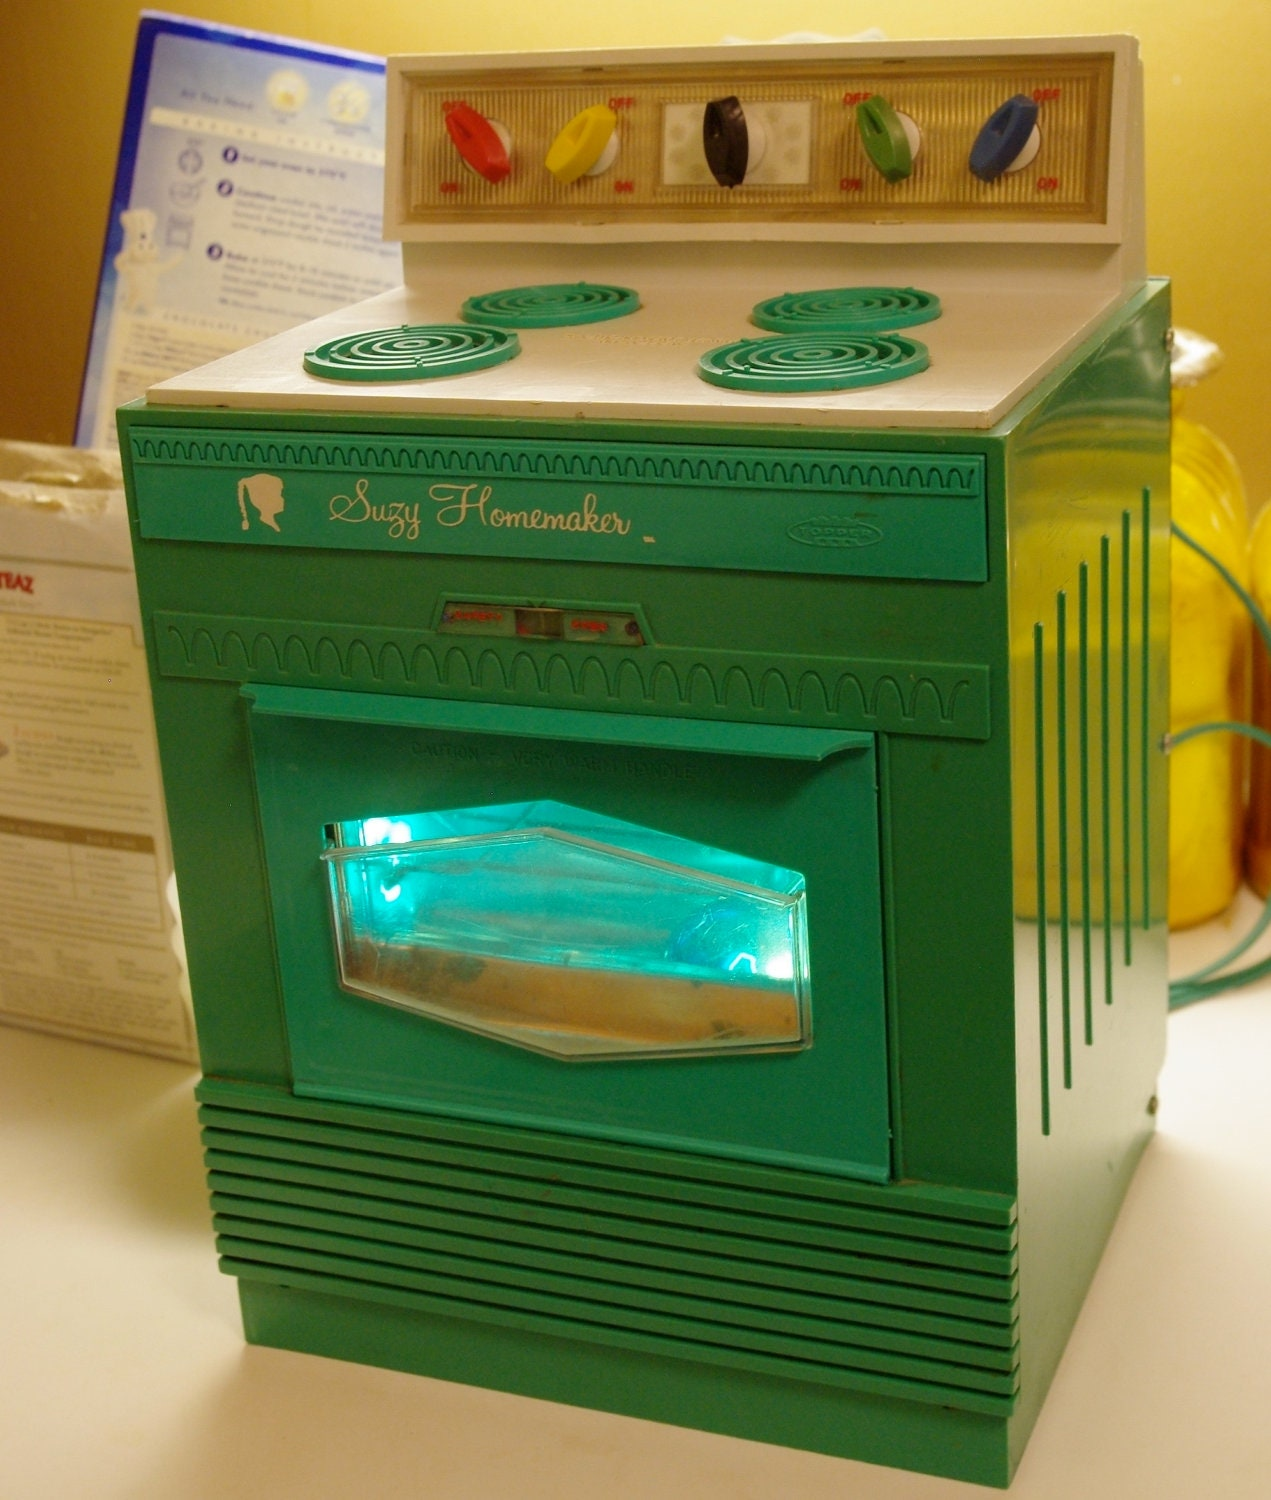 60s Suzy Homemaker Oven Retro Topper Toy Turquoise By Modmarge